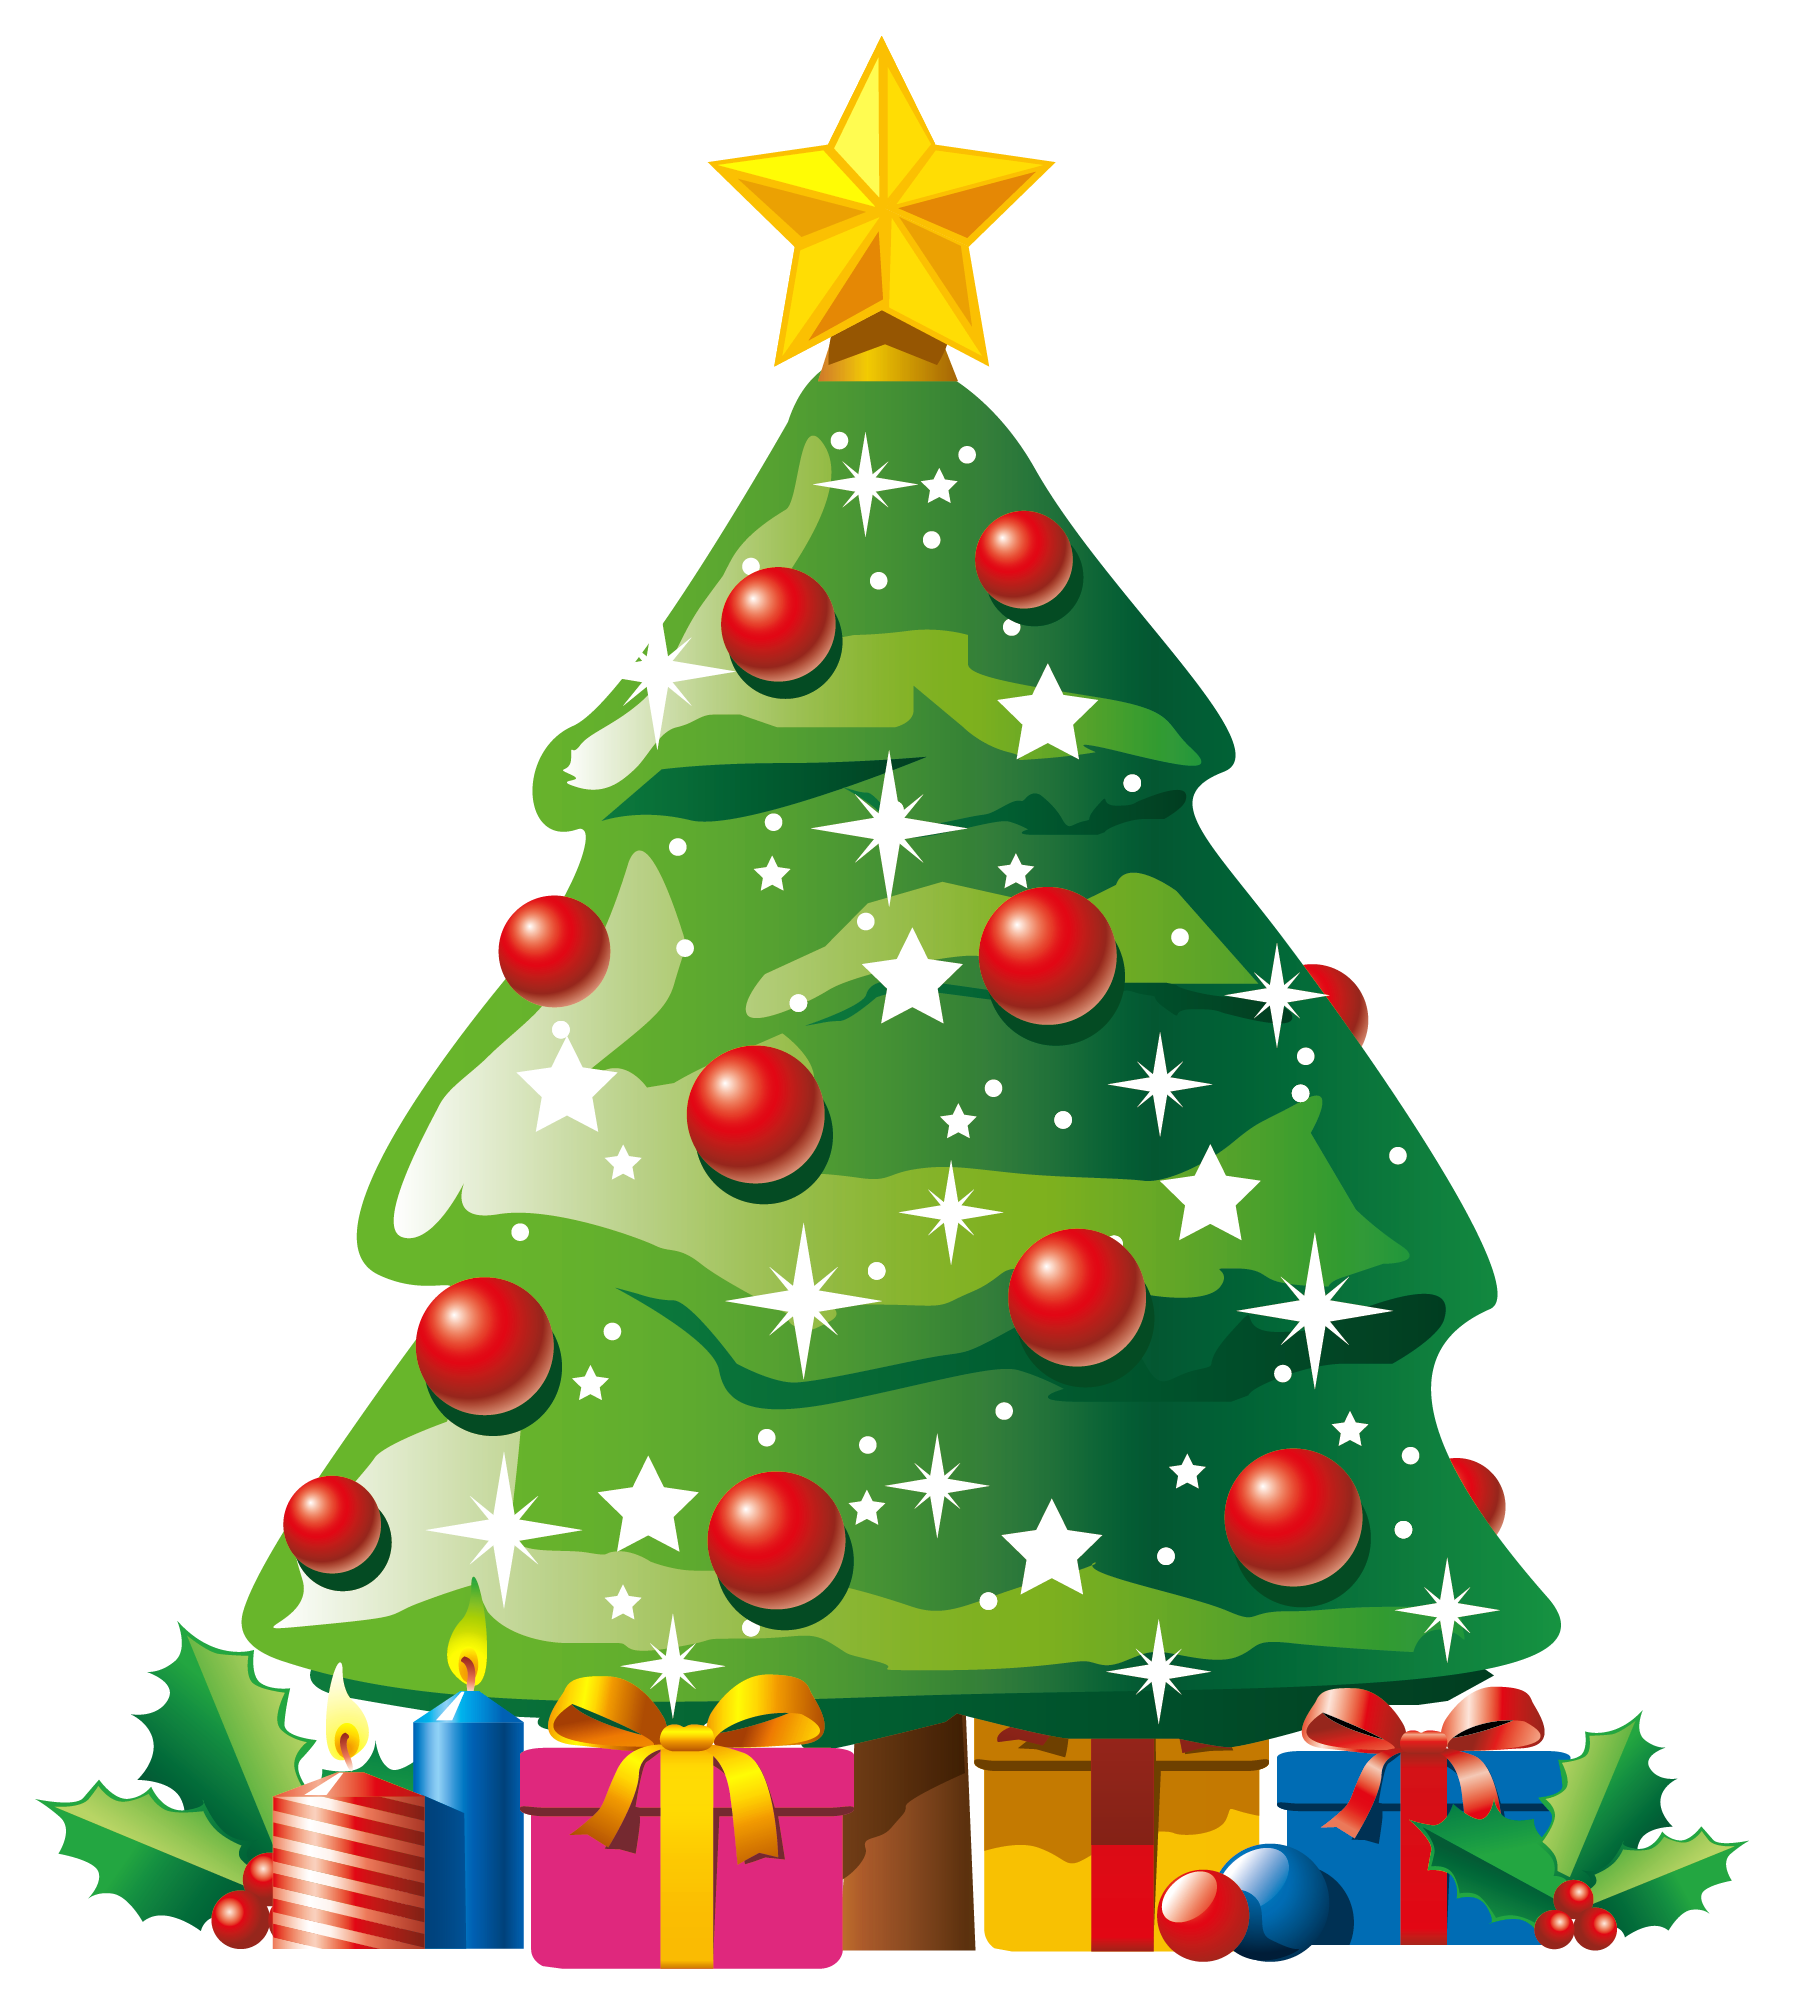 Stamp clipart christmas mail. Transparent deco tree with